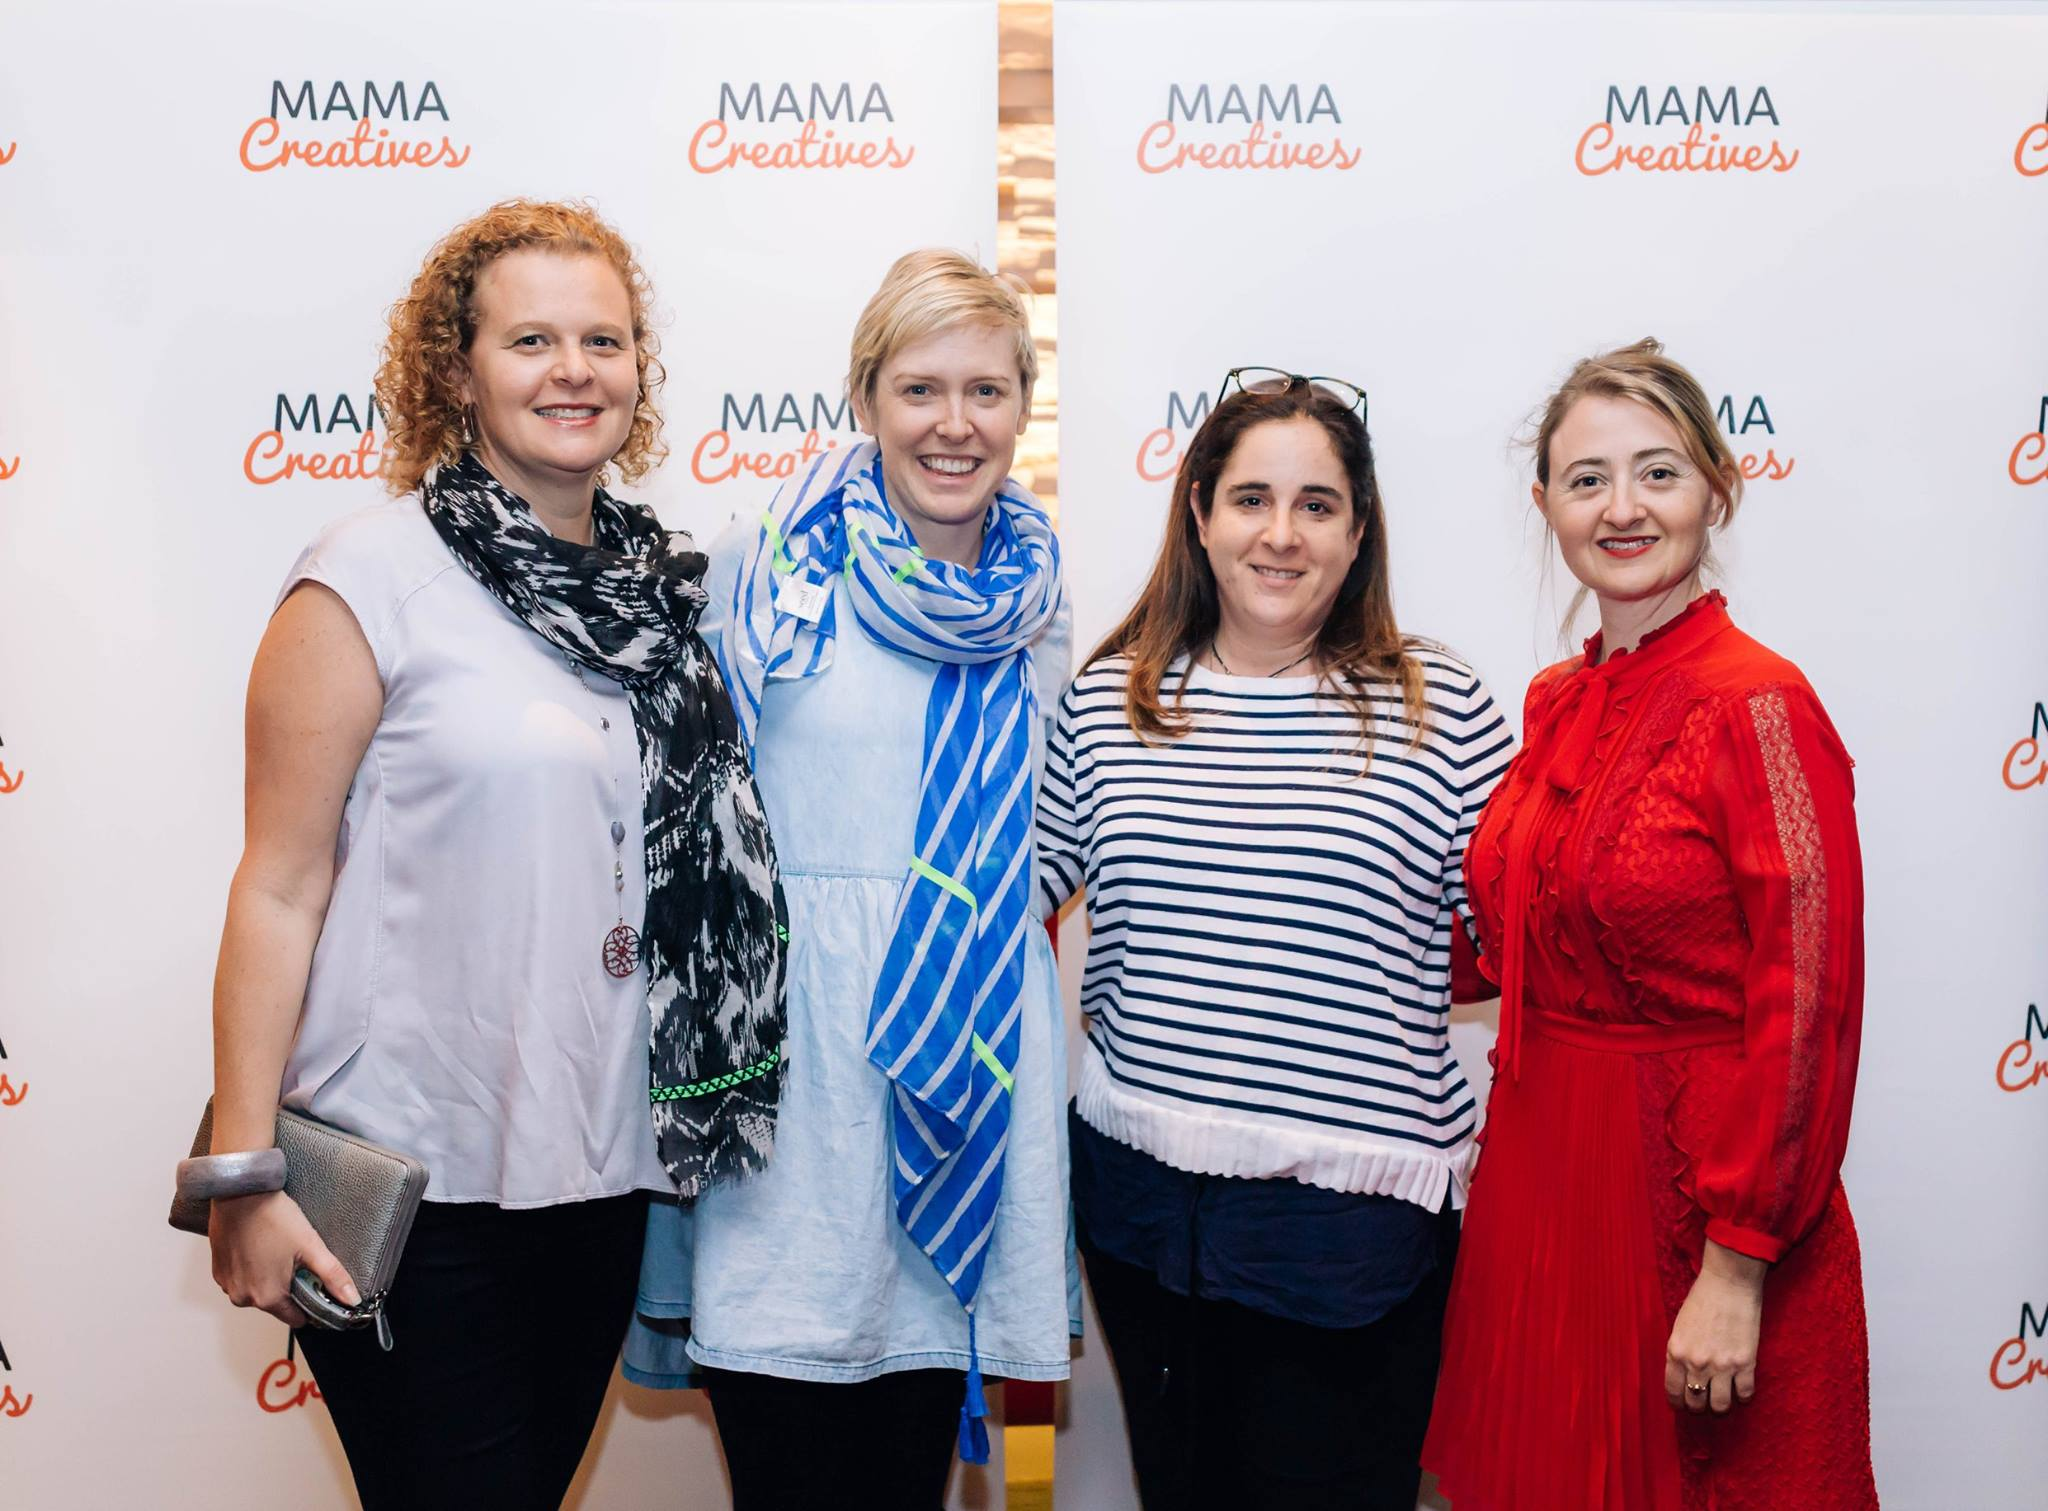 Hanging out with talented creative mamas who enjoyed our inspiring Mama Creatives Mother's Day Celebration.